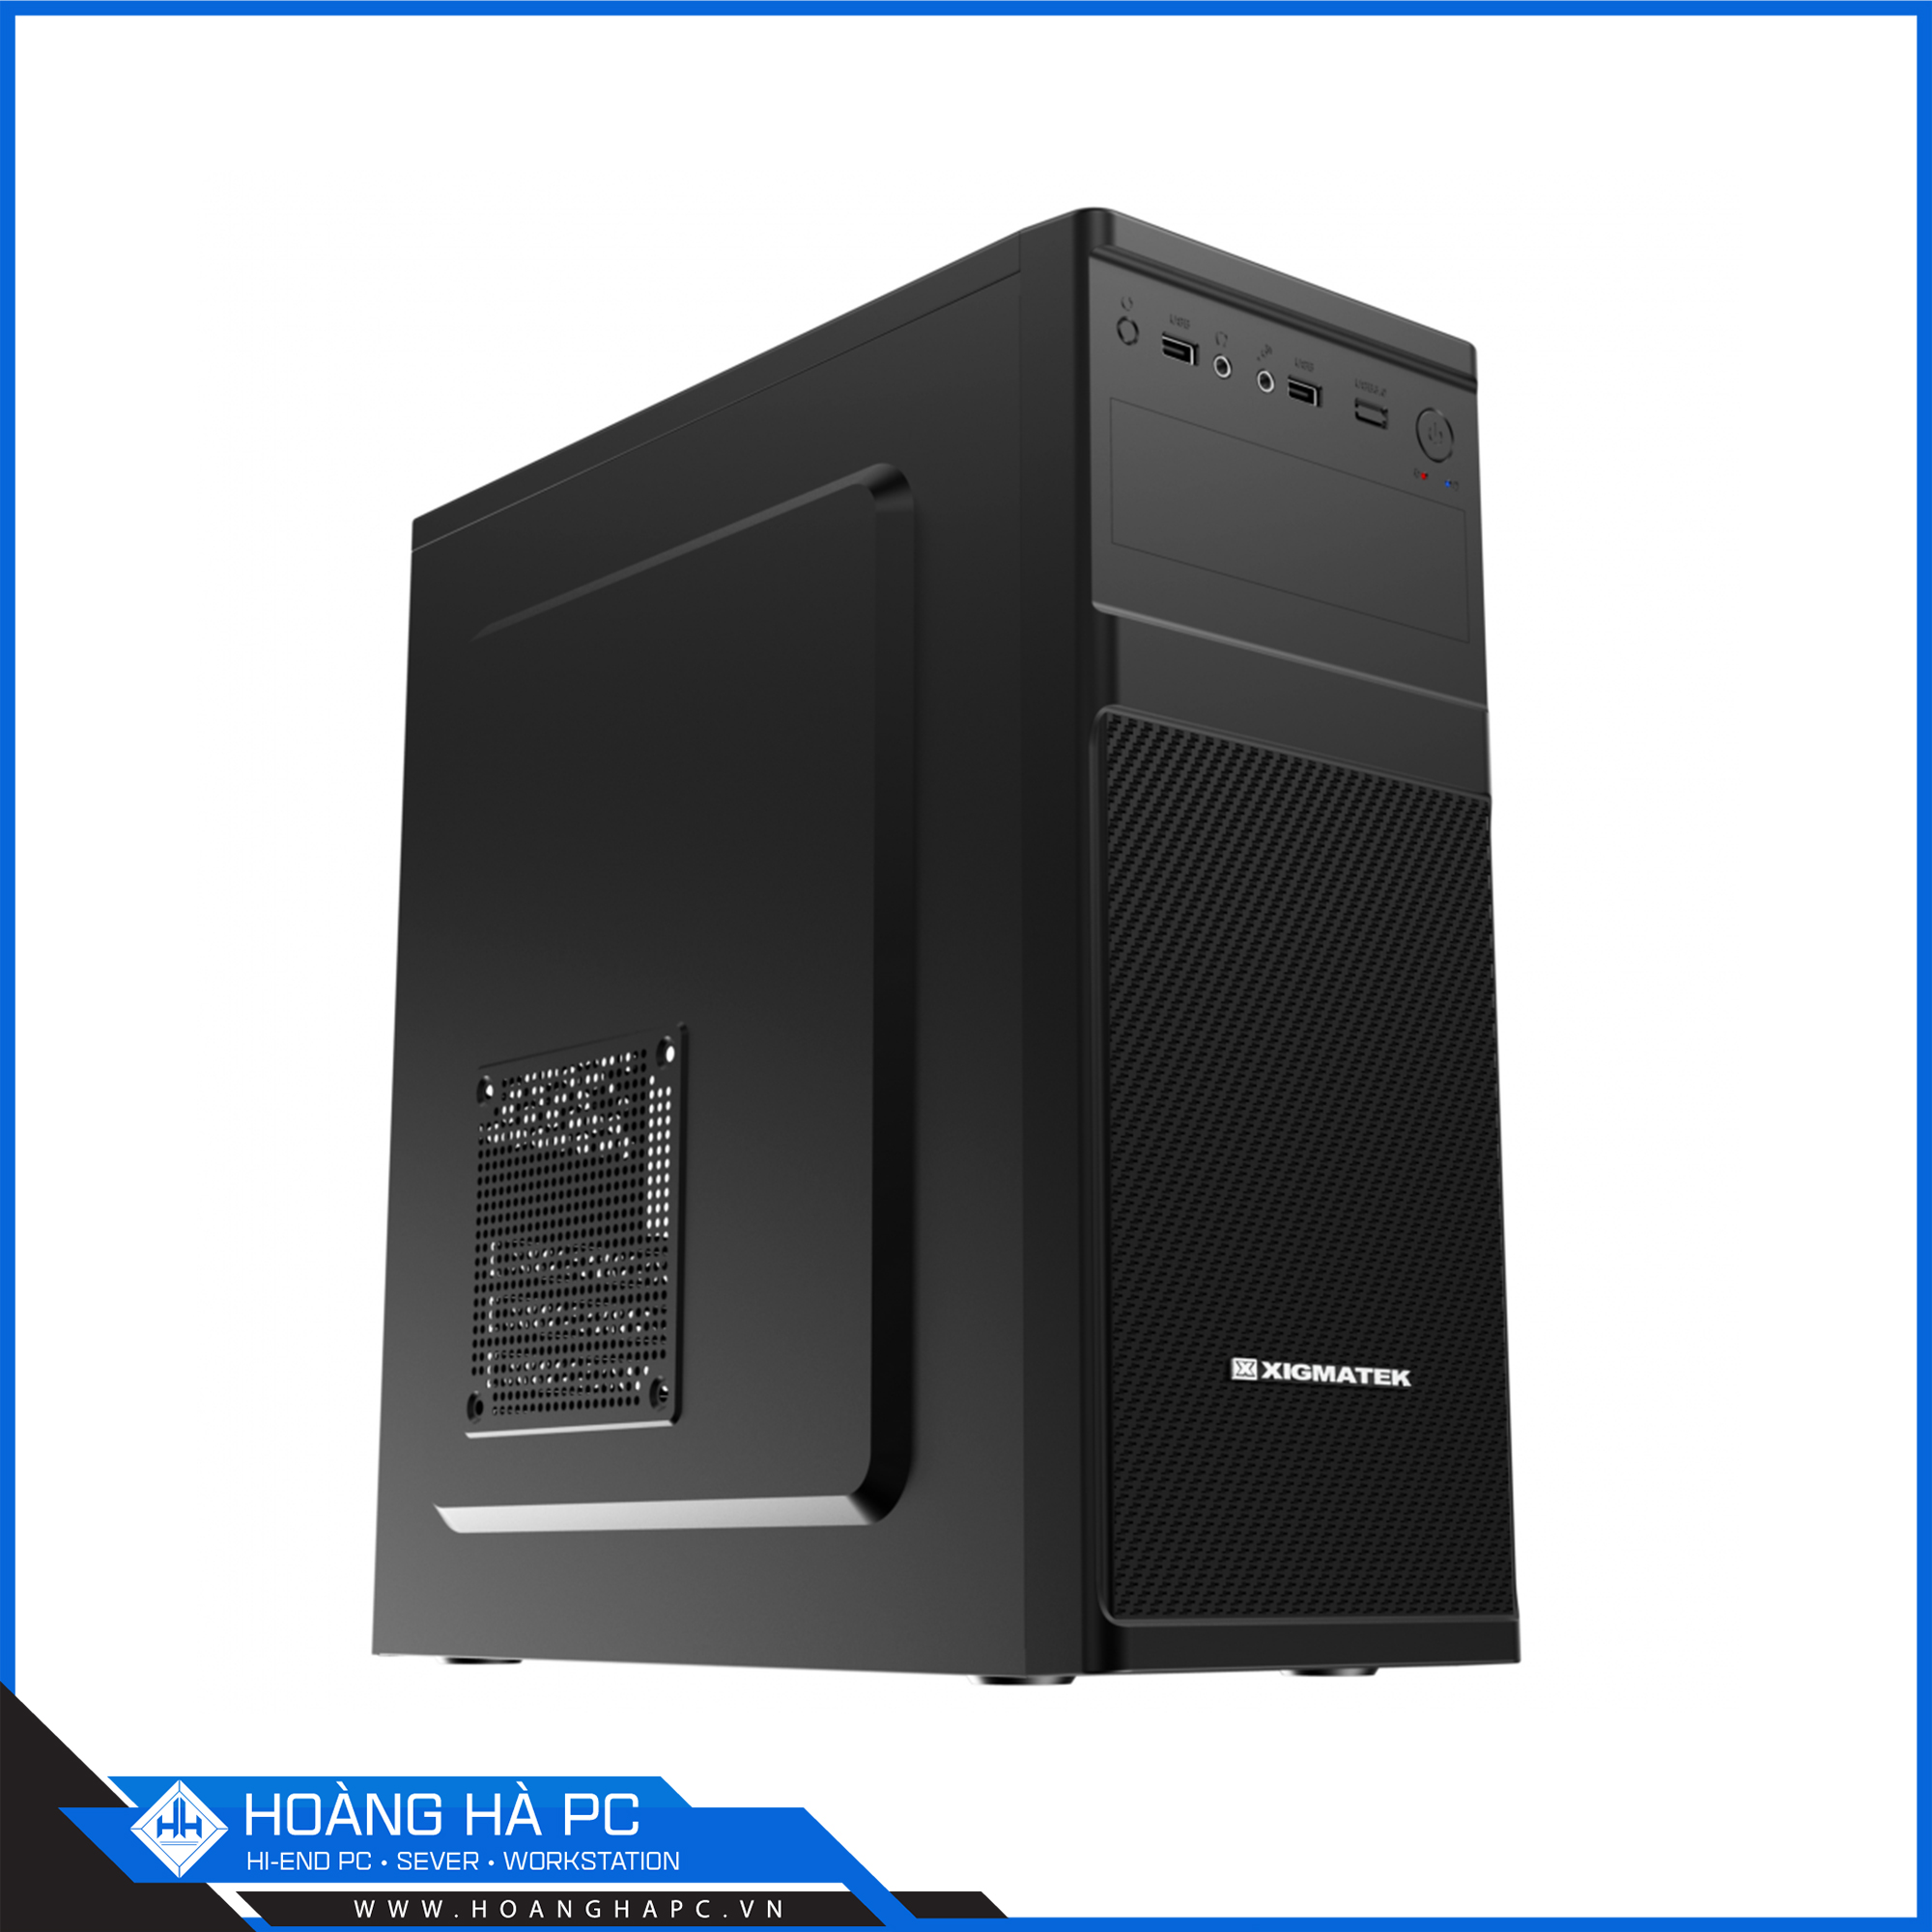 OFFICE PC - INTEL CORE i5 6500 | RAM 8G | SSD 240G + HDD 1TB